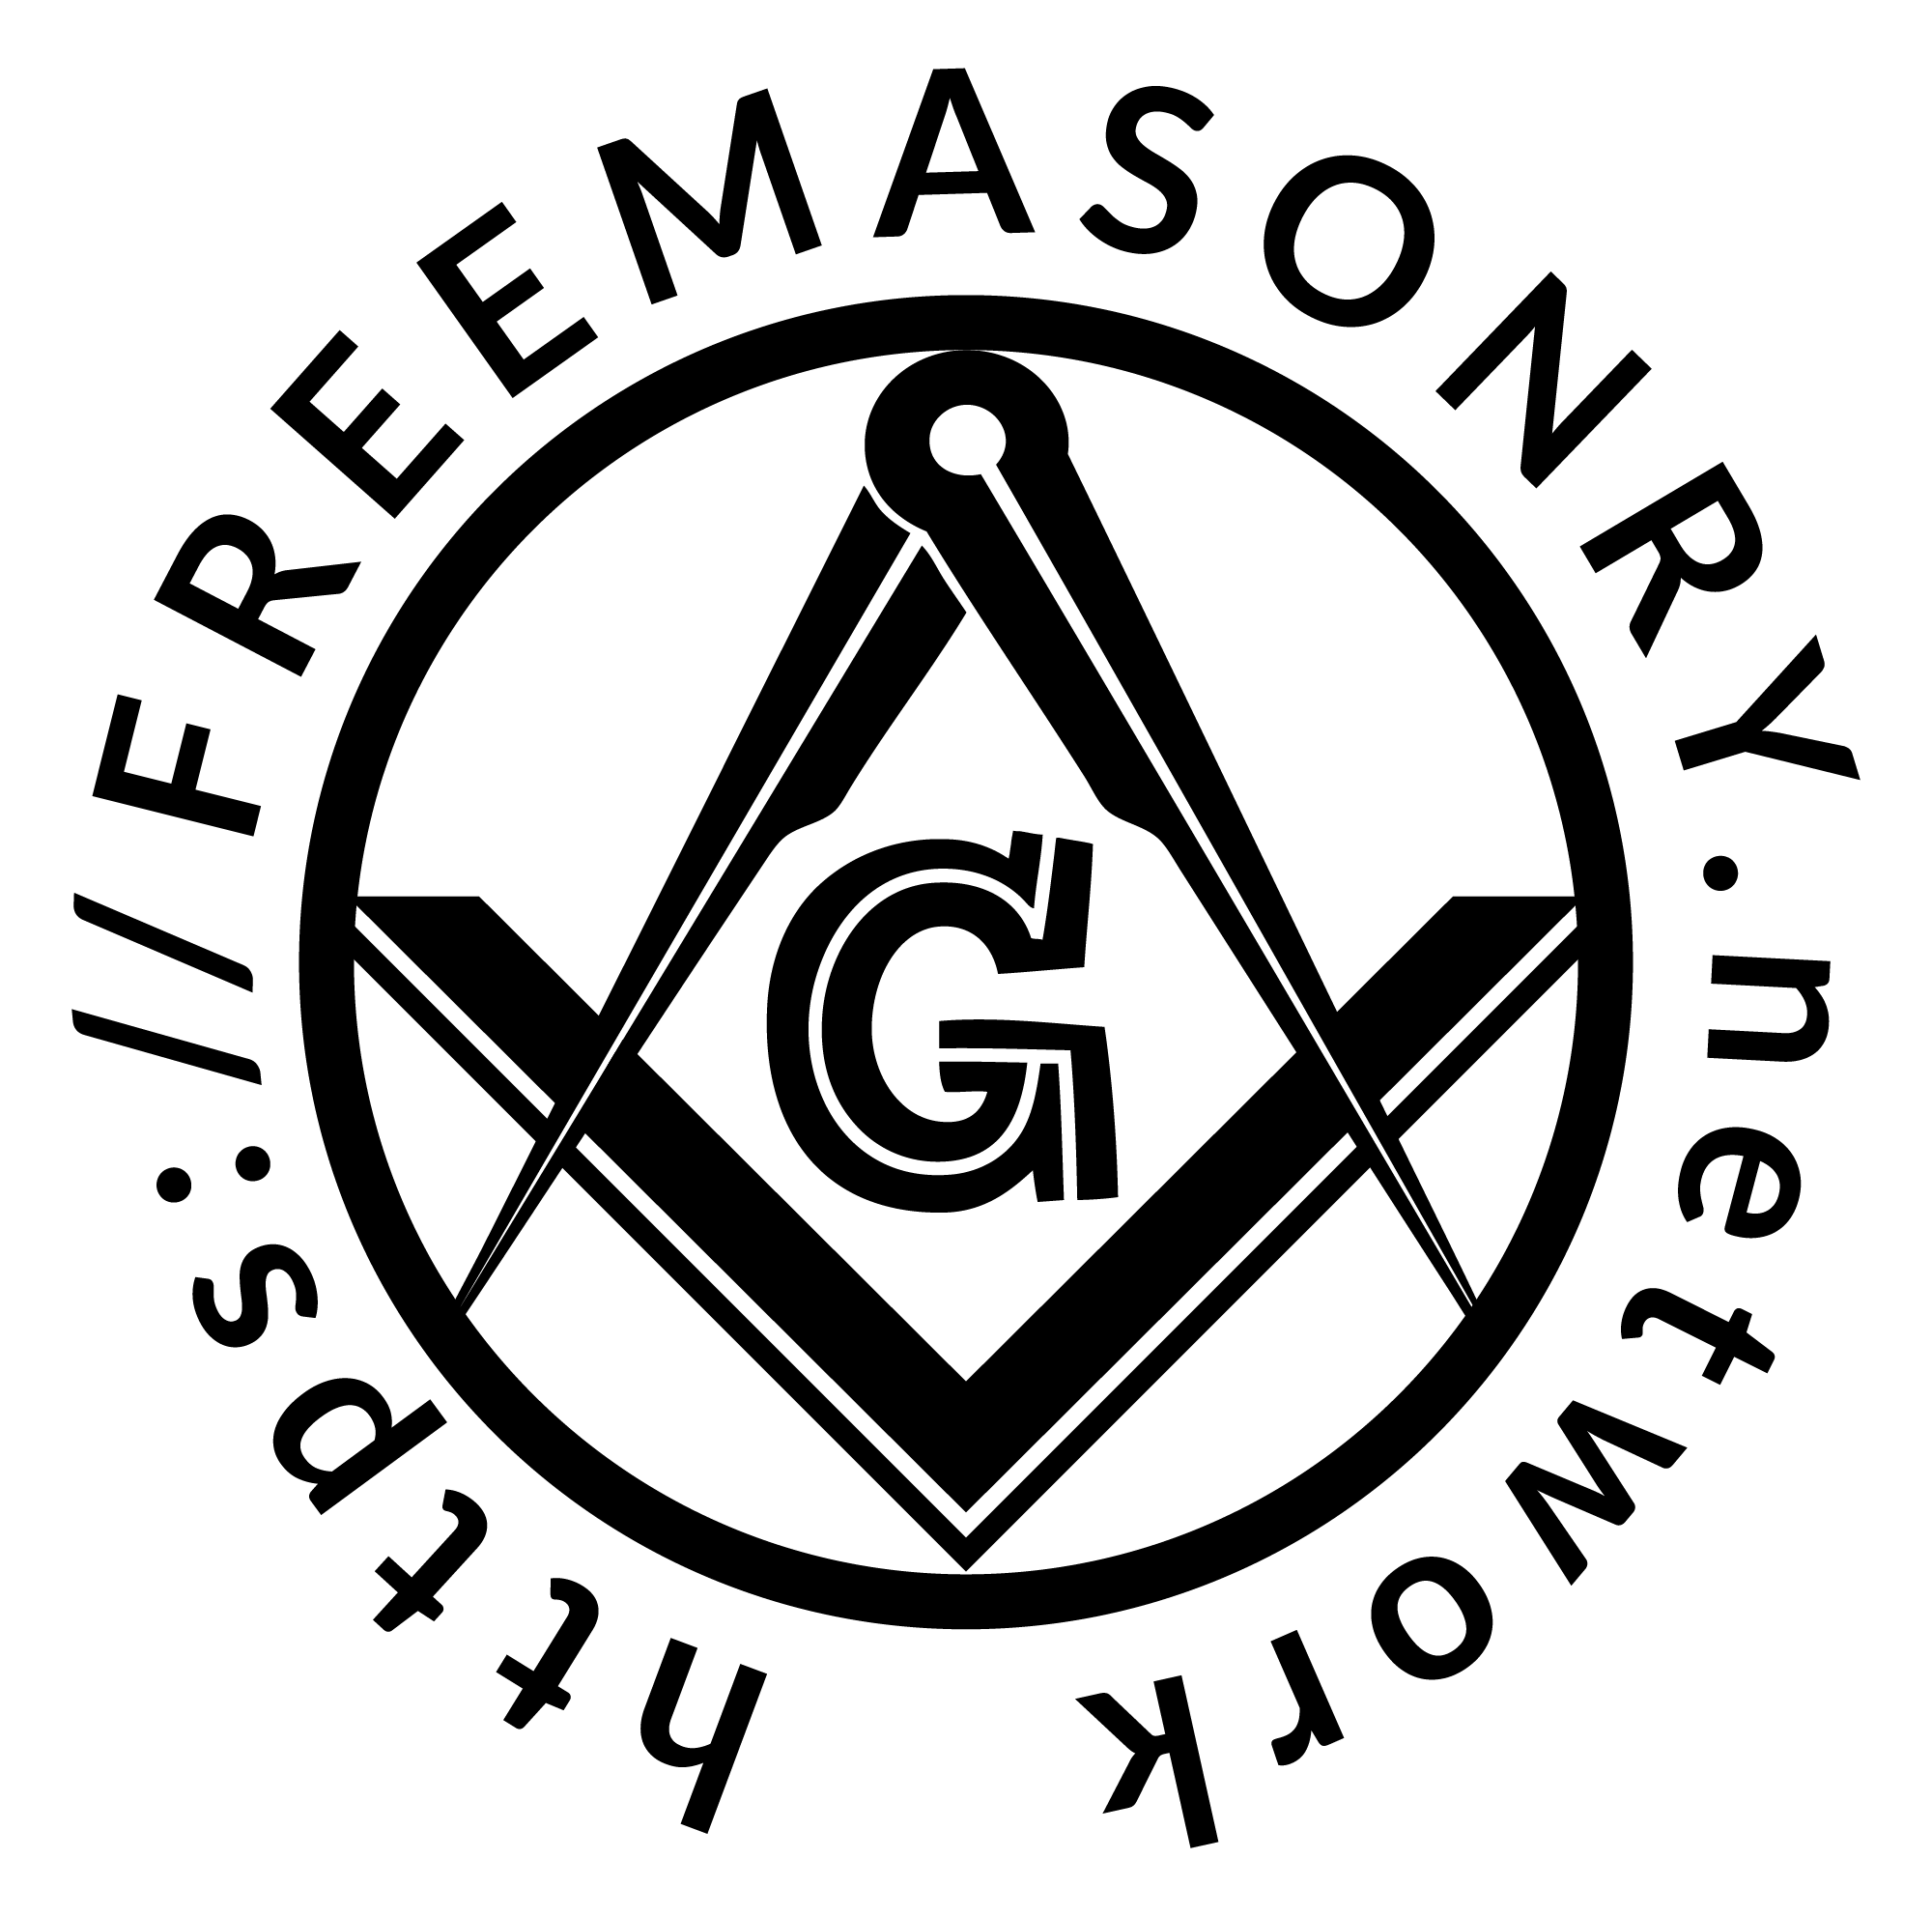 Masonic membership - Lodge Economics